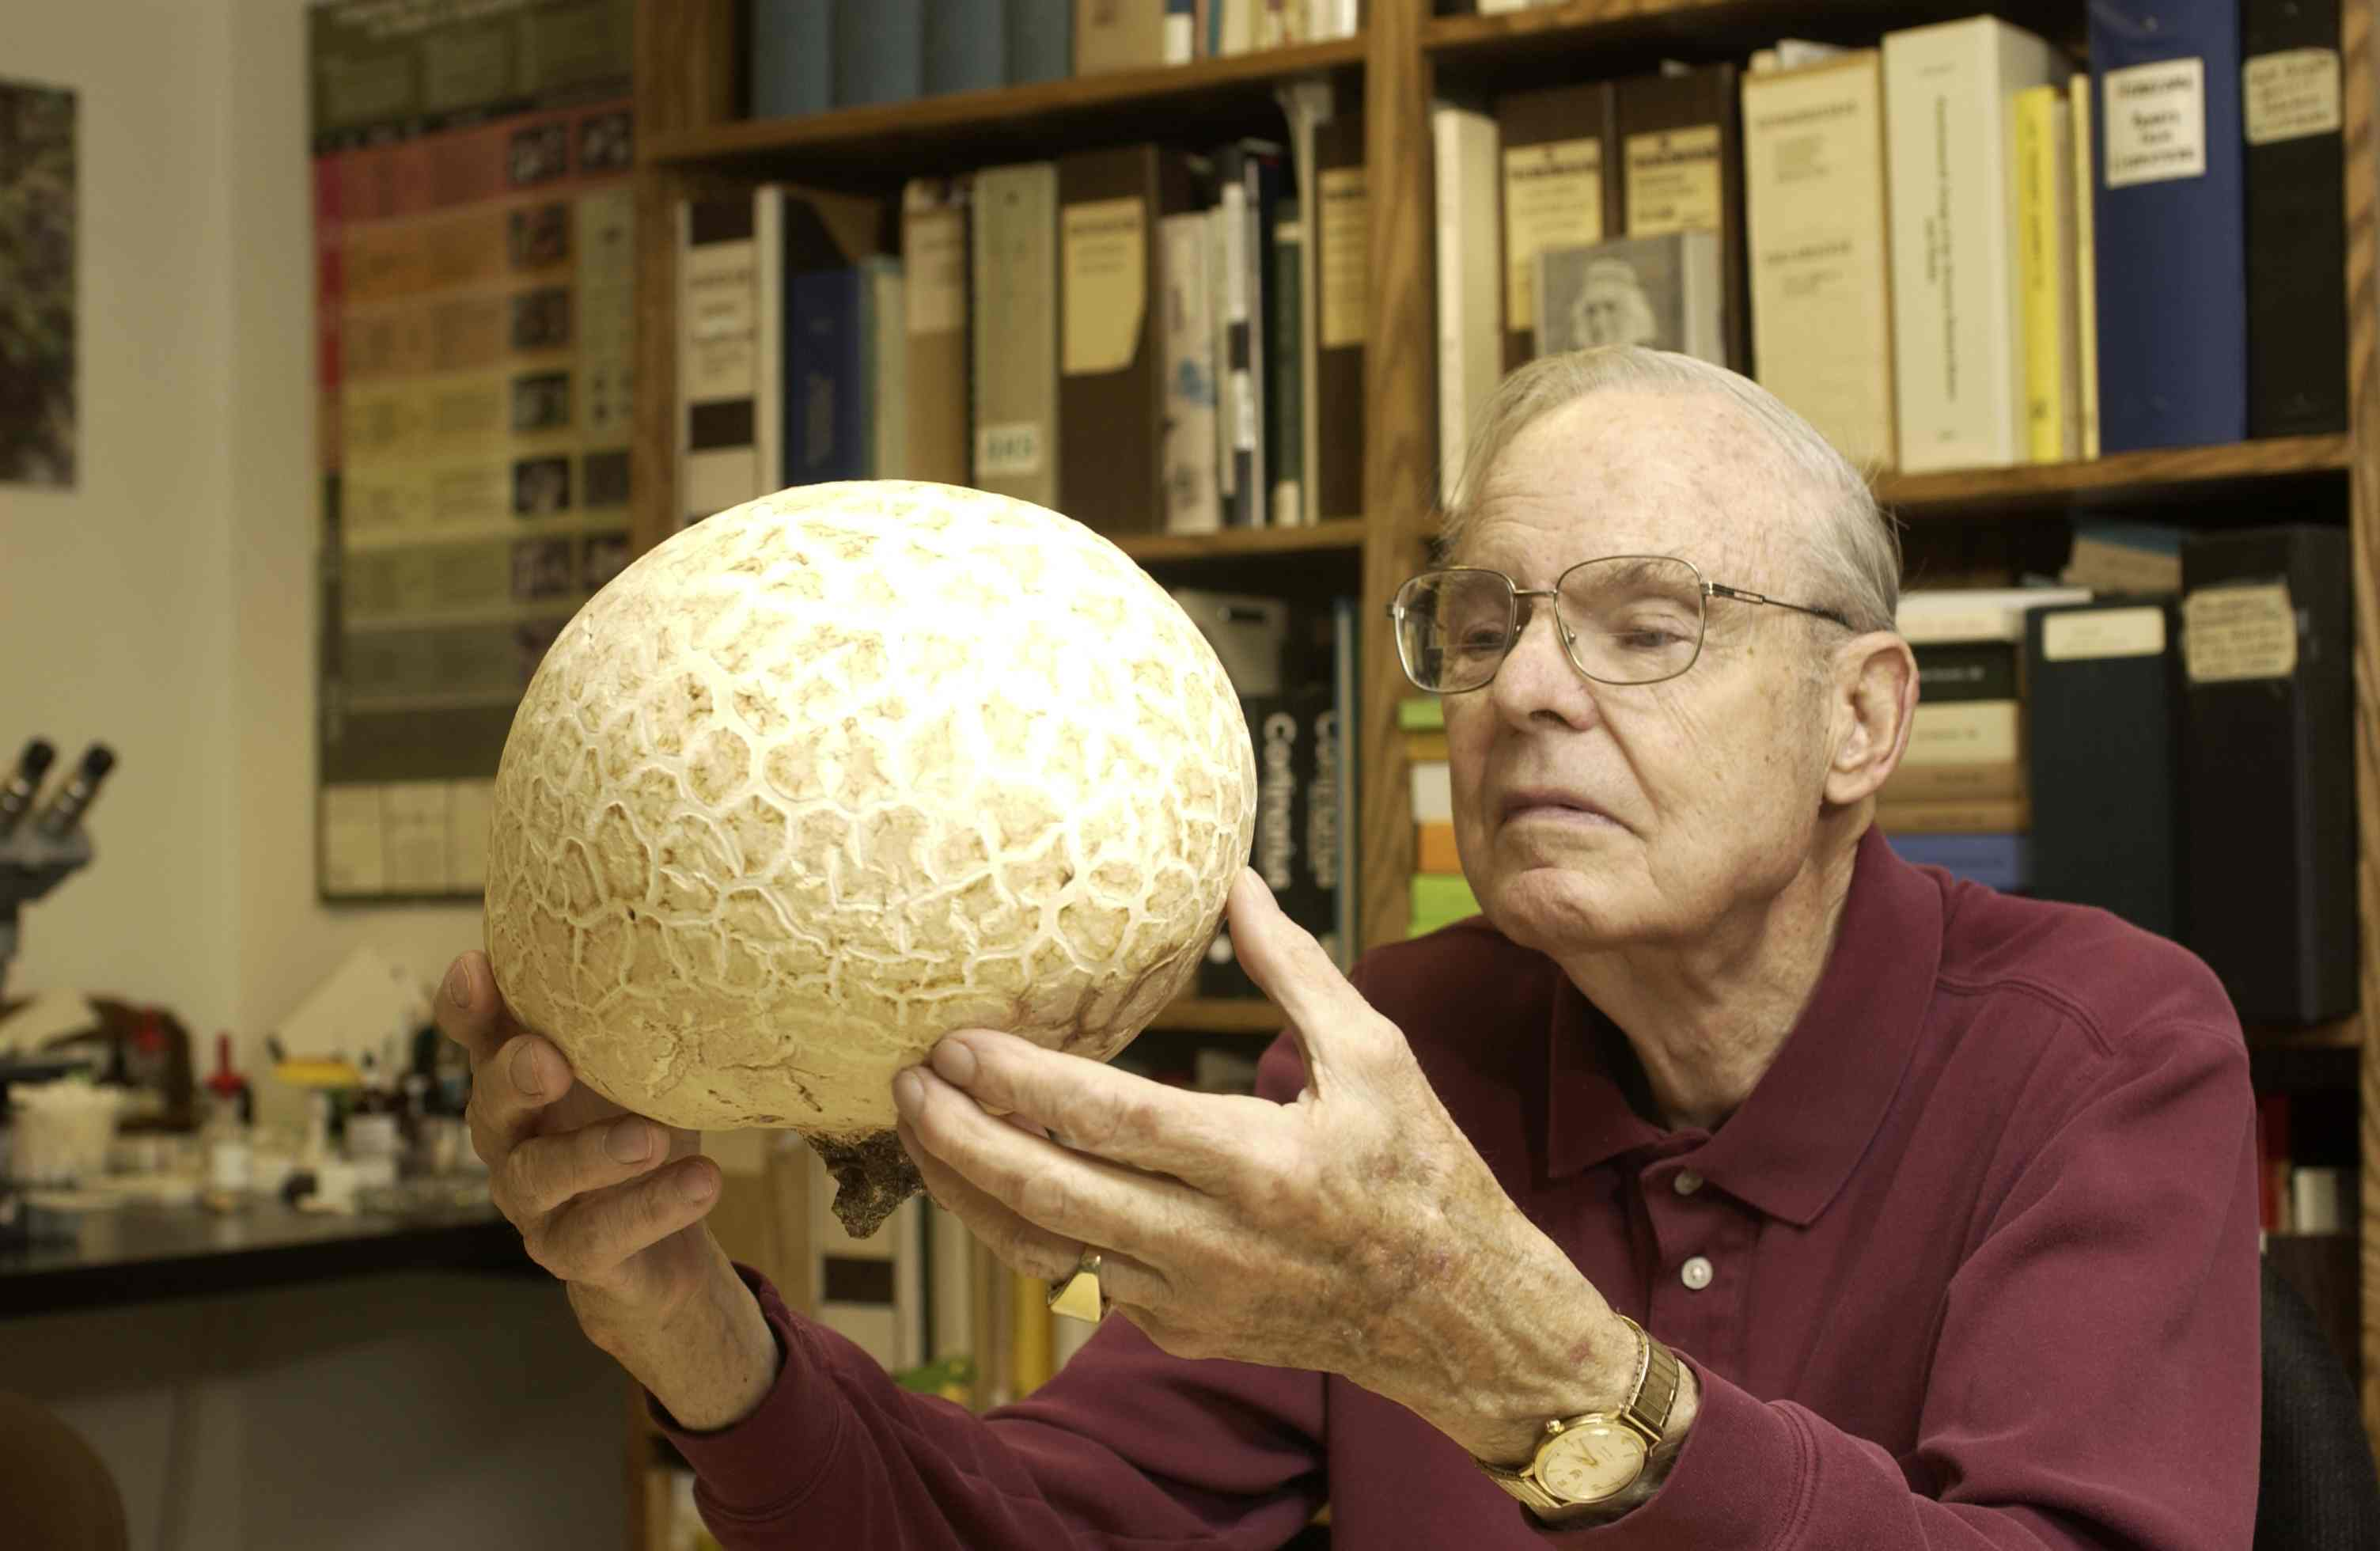 A puffball species being held by Bob Brace, a former herbarium volunteer